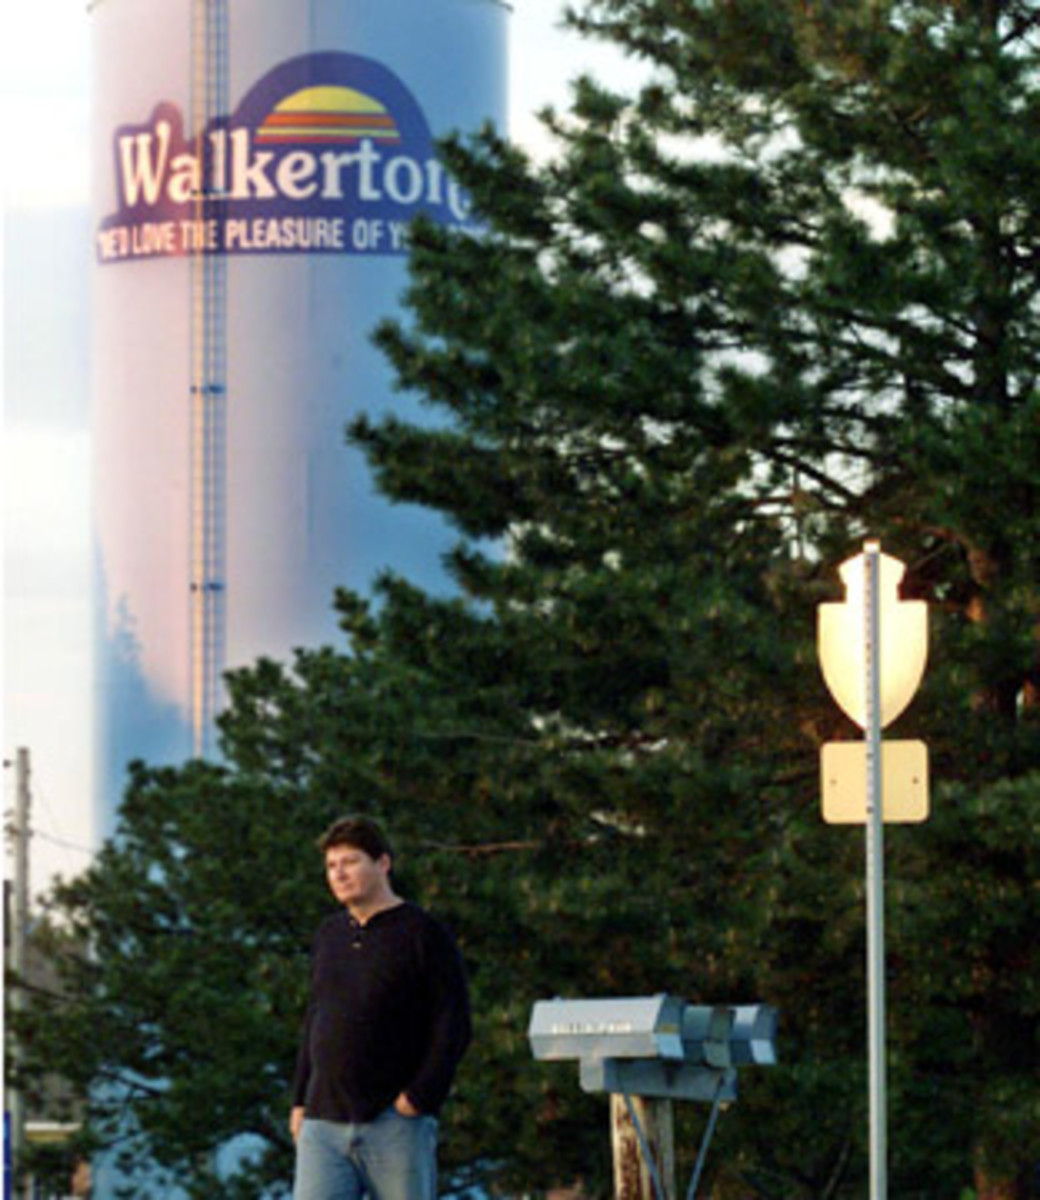 Walkerton's water tower